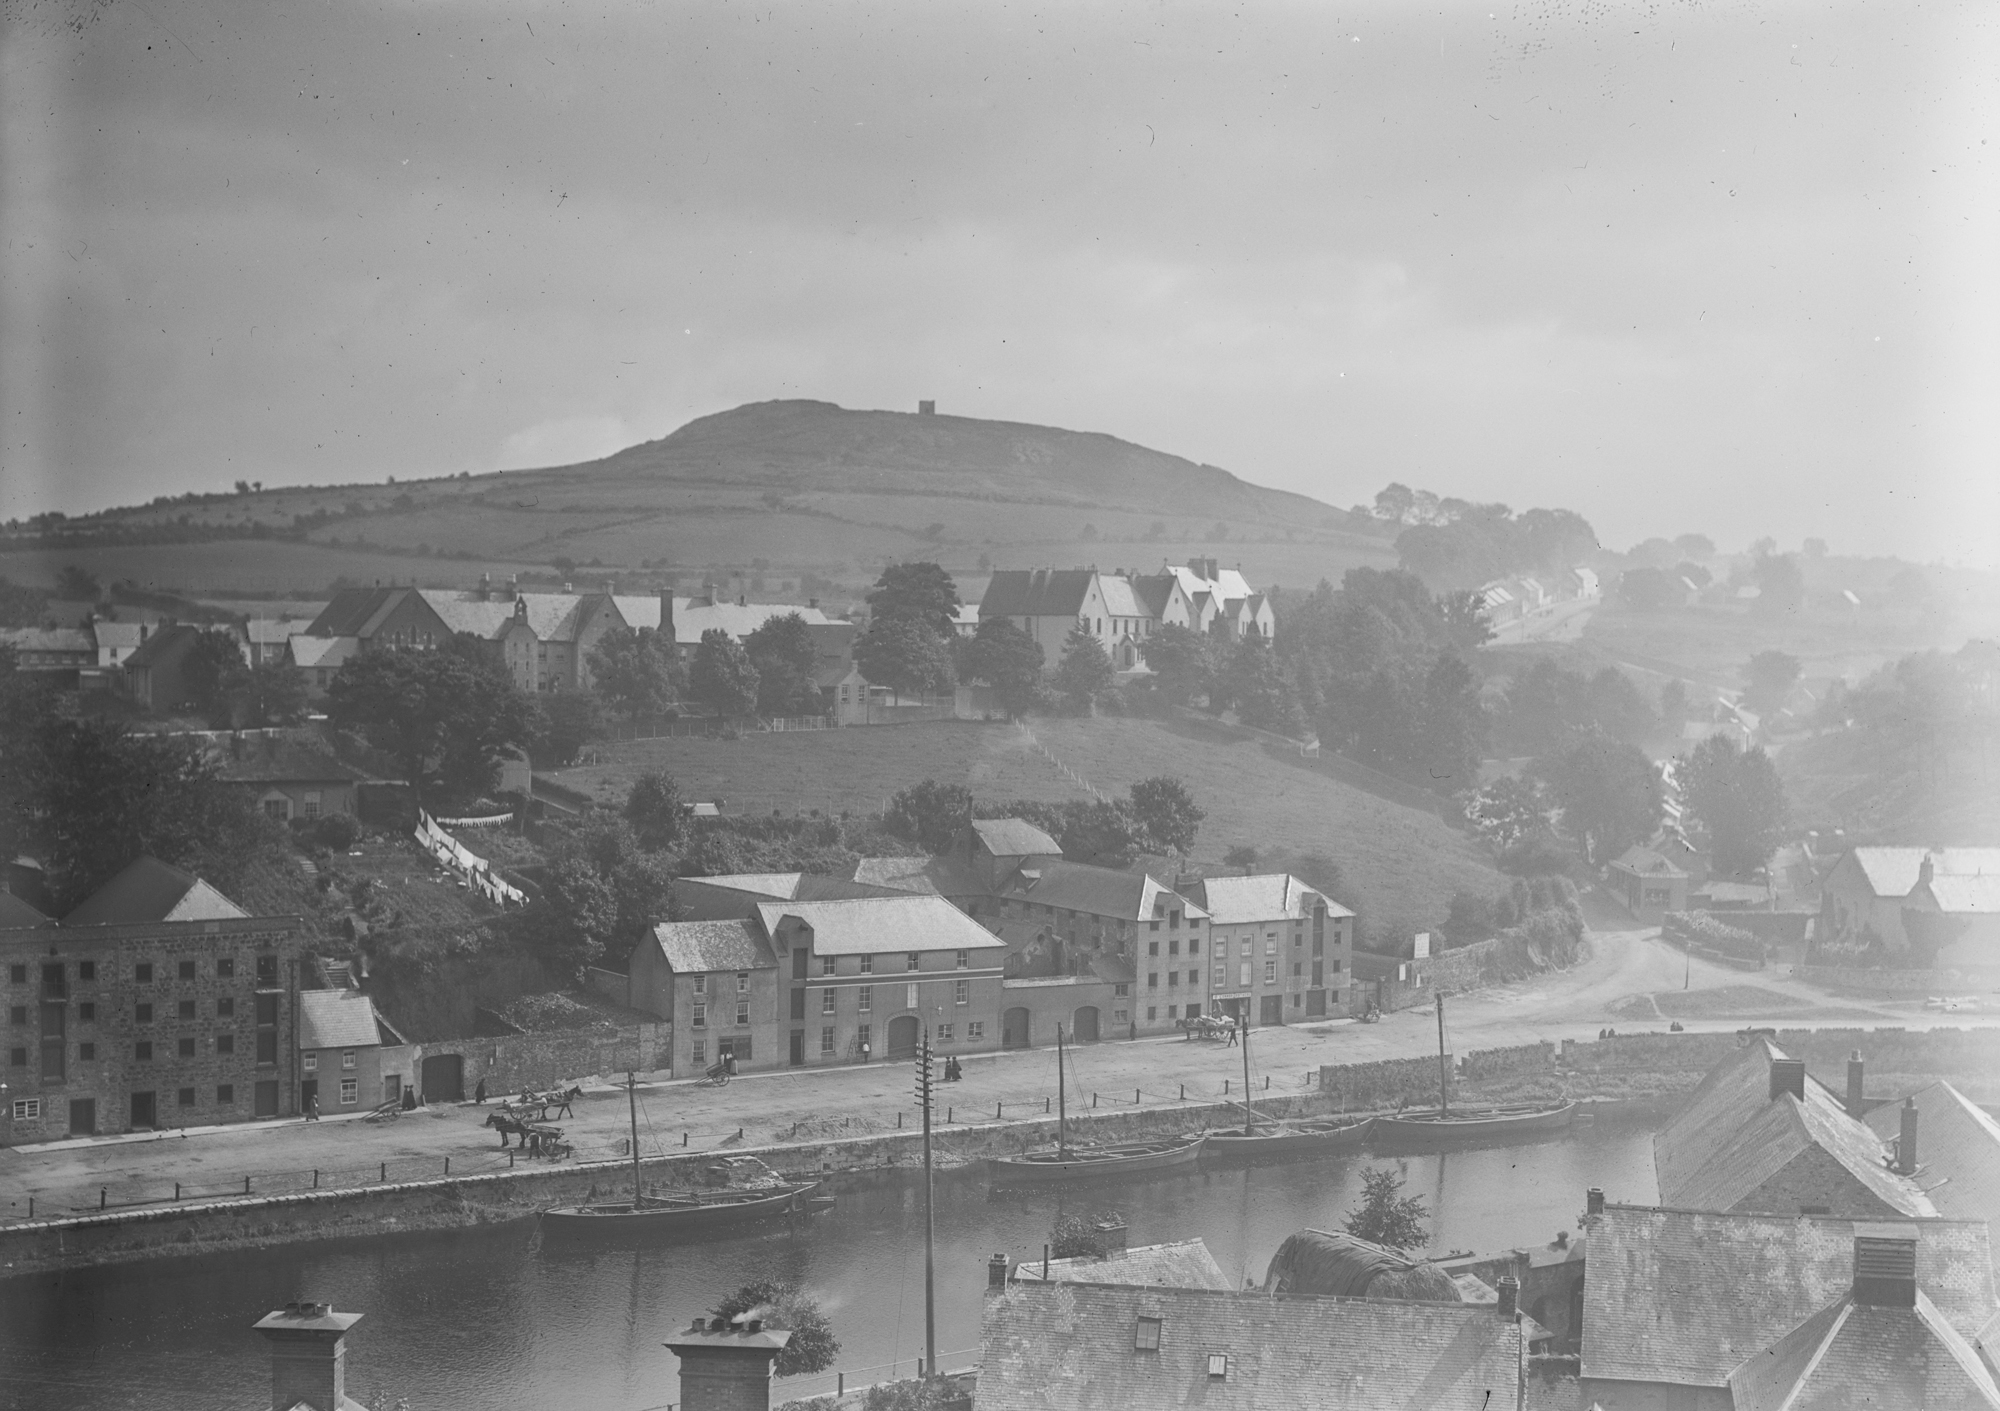 General View, Enniscorthy, Co. Wexford